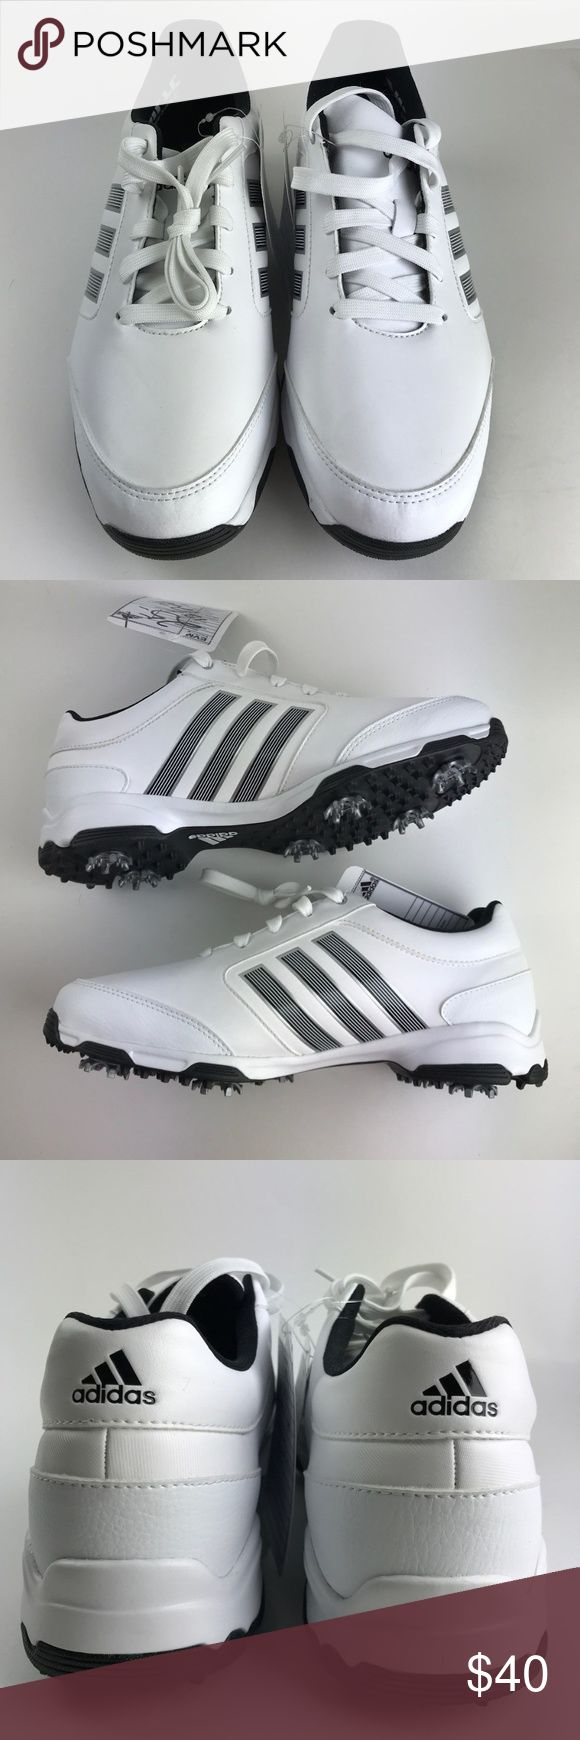 NWT Adidas Pure 360 Lite Golf Shoes sz 9 Adidas sample golf shoe,never been used or worn. adidas Shoes Athletic Shoes